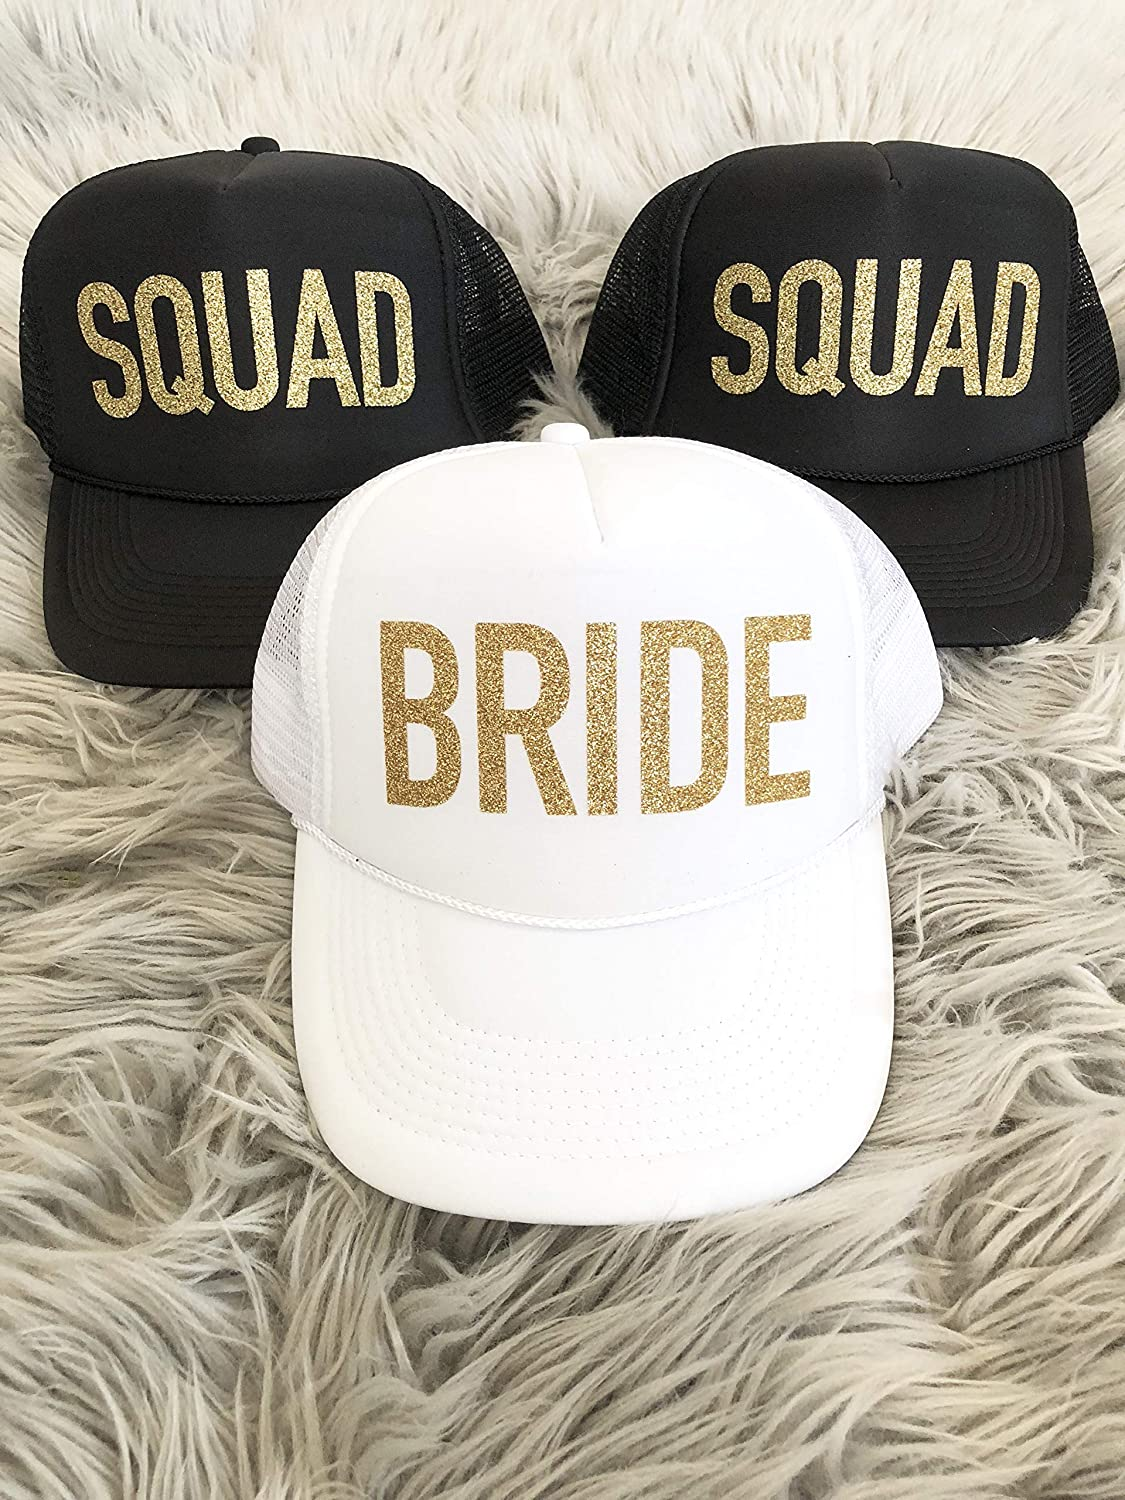 eb25bda7 Amazon.com: SQUAD and BRIDE Bachelorette Party Hats: Handmade